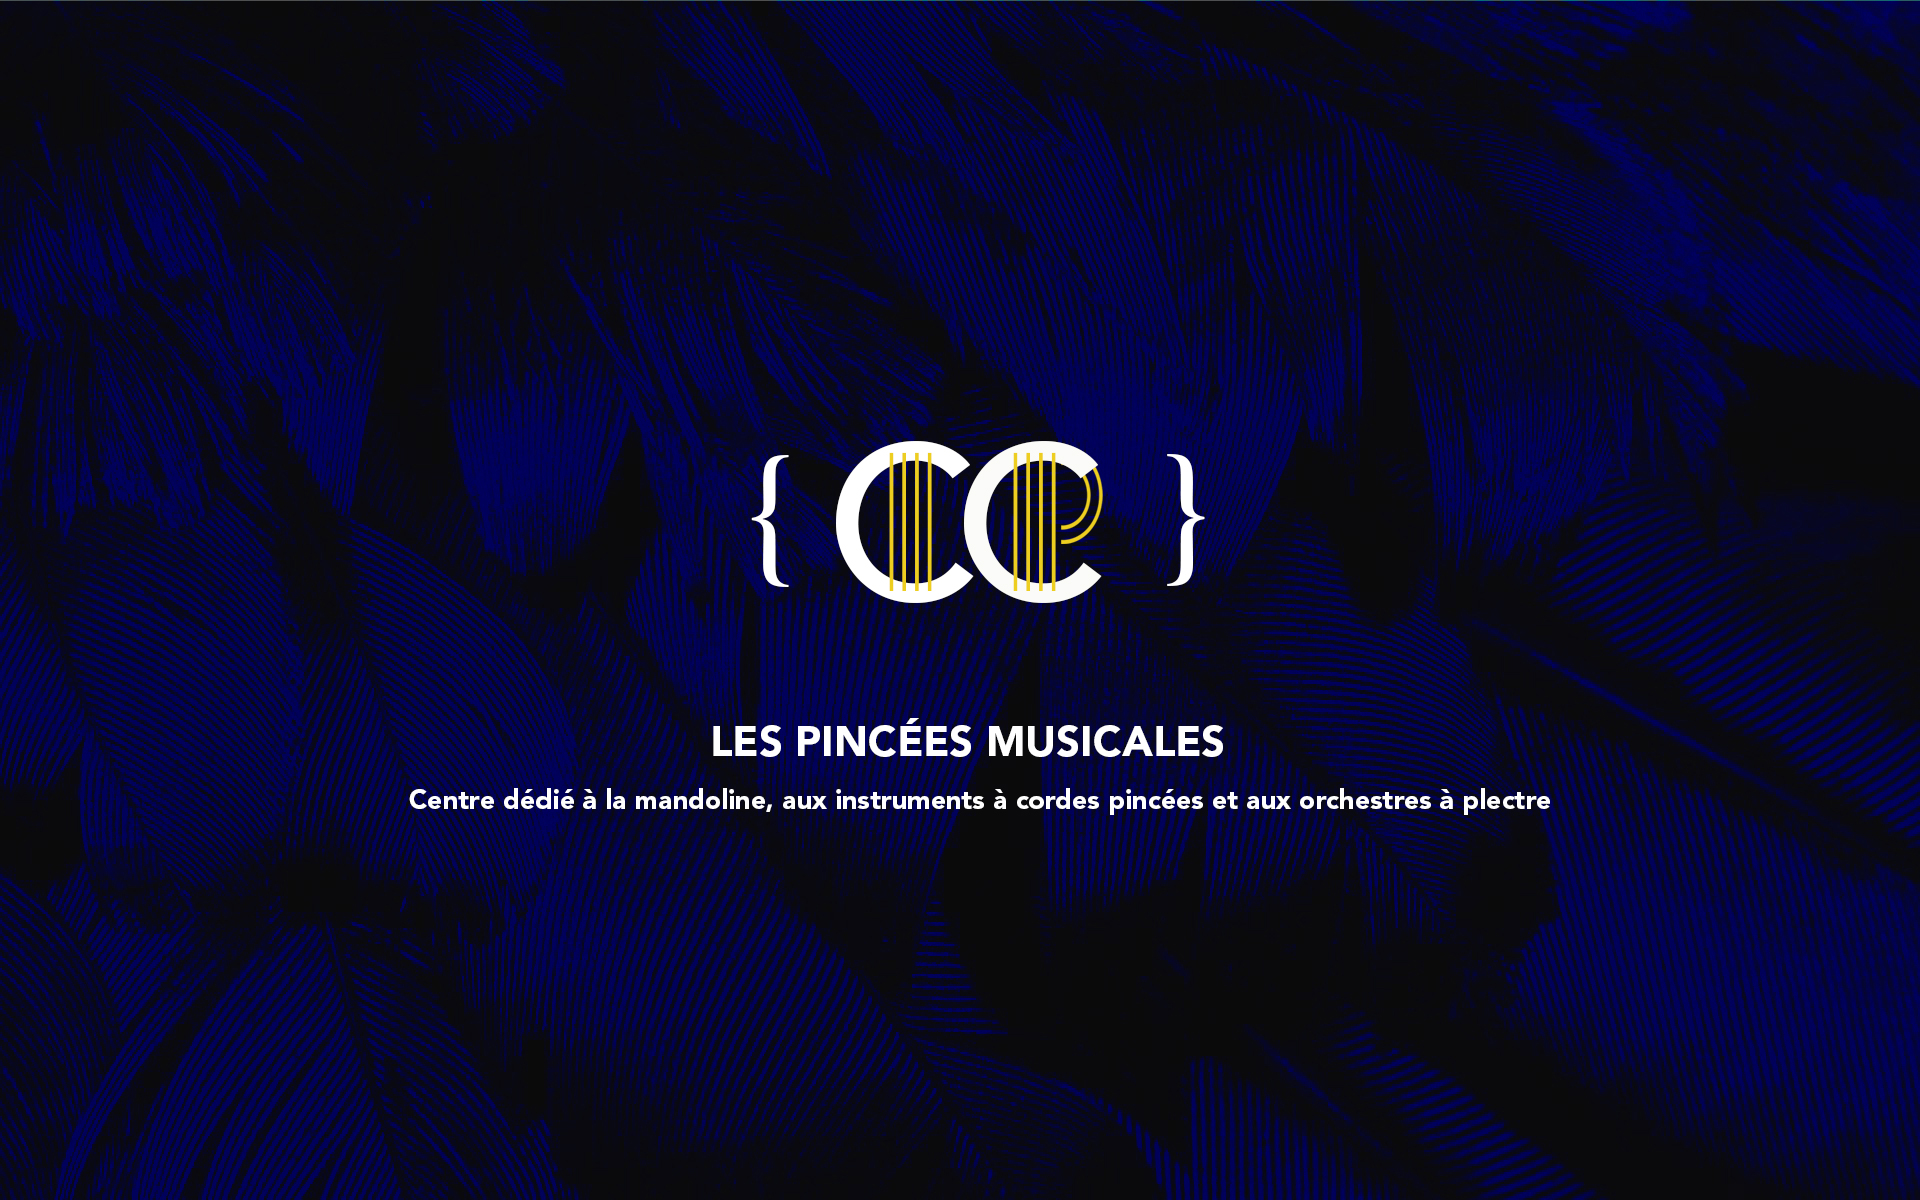 les-pinces-musicales-agence-ysee